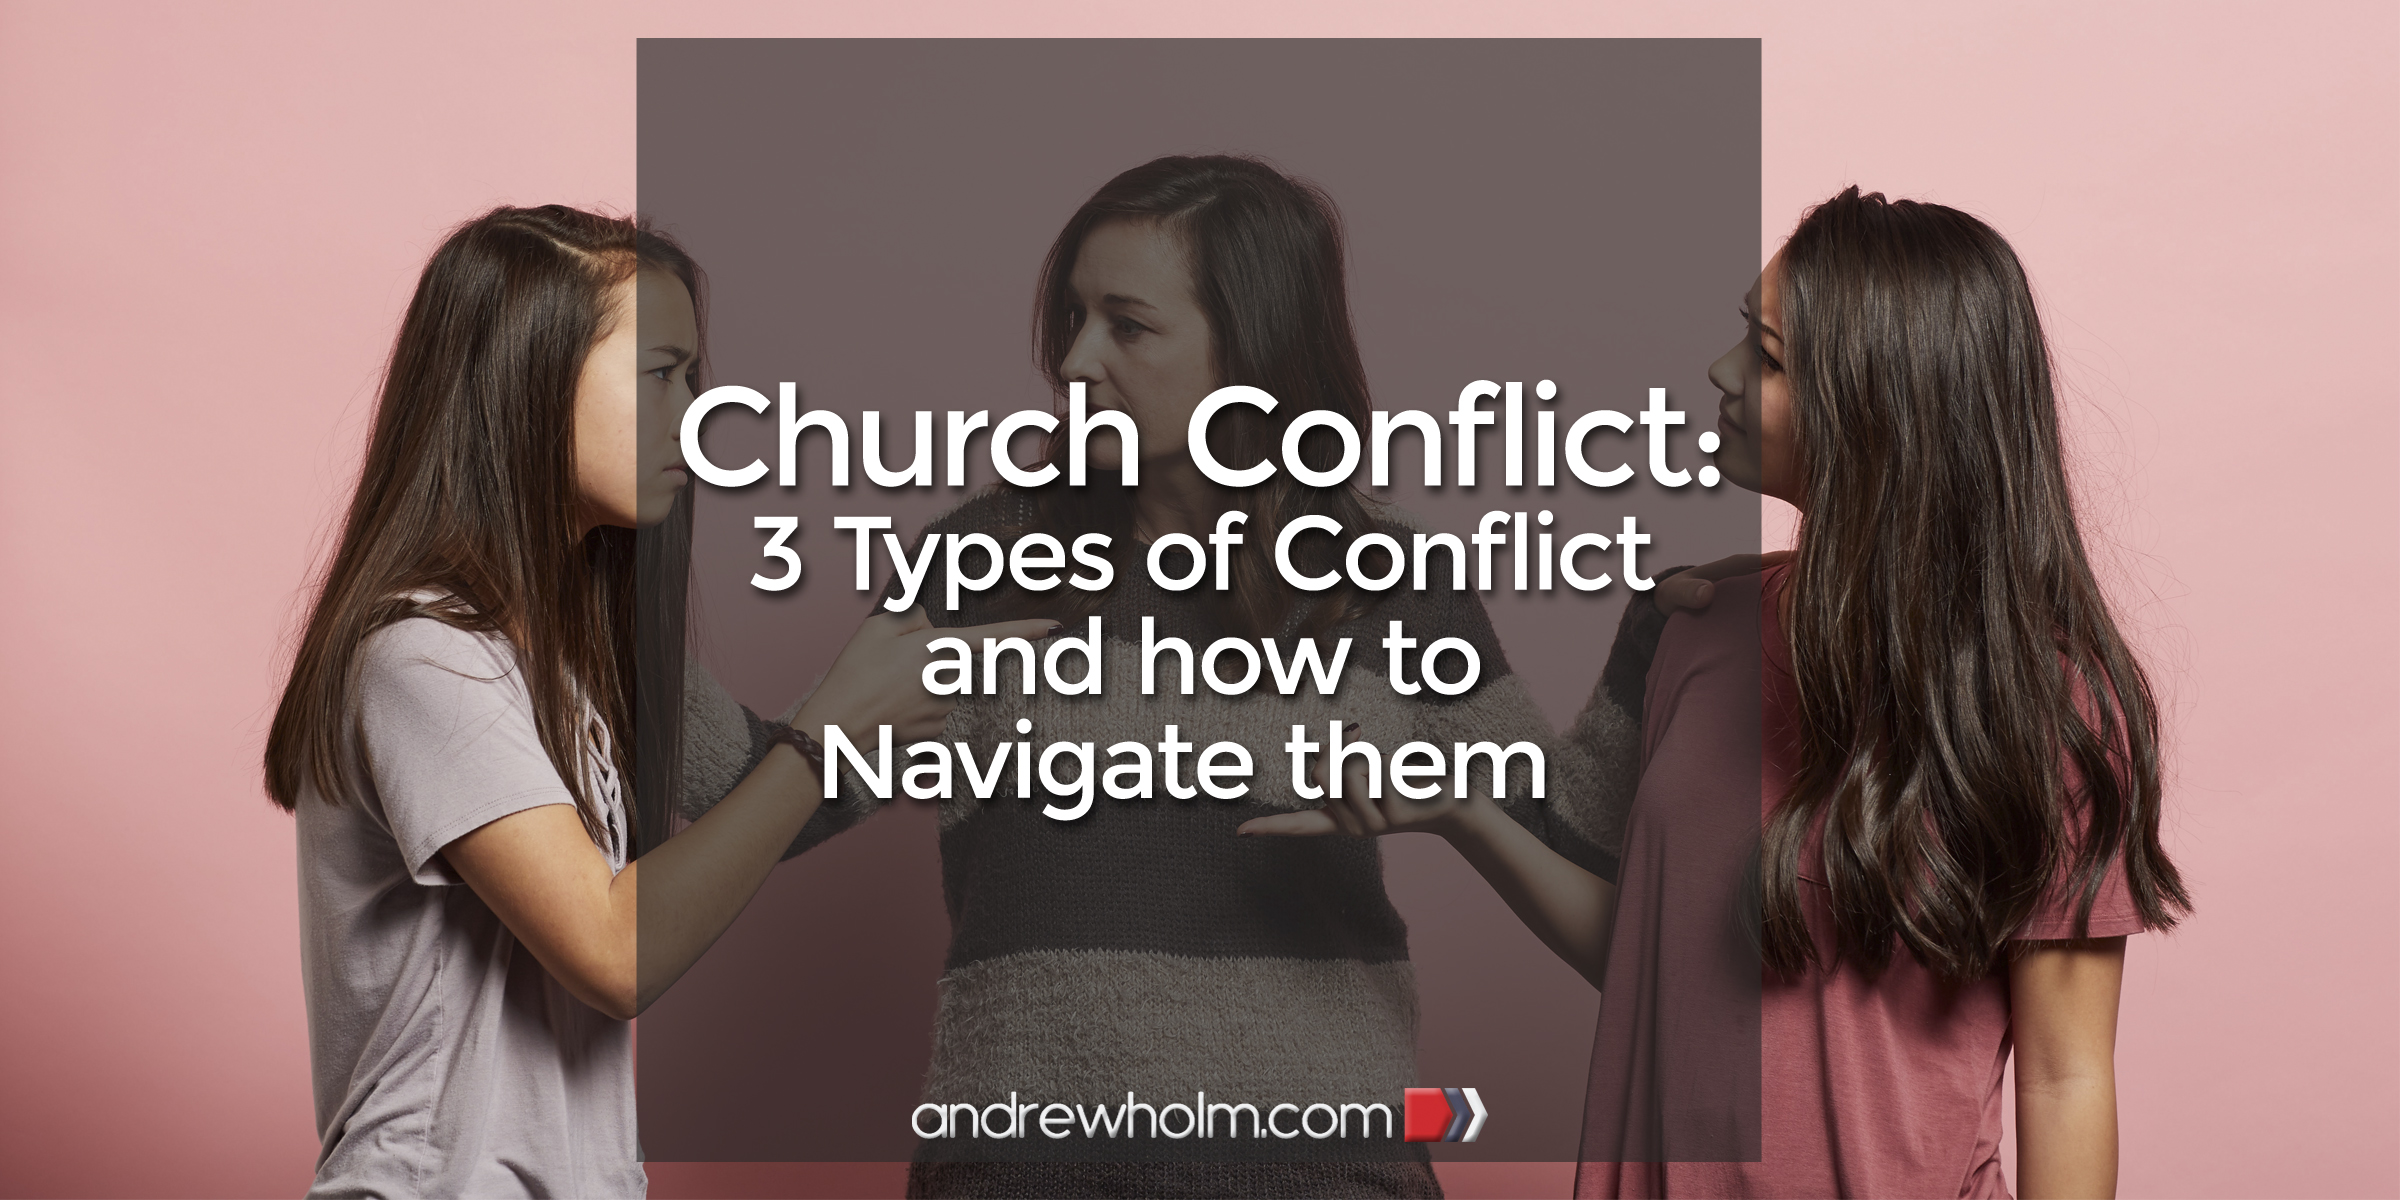 Church Conflict: 3 types of conflict and how to navigate them